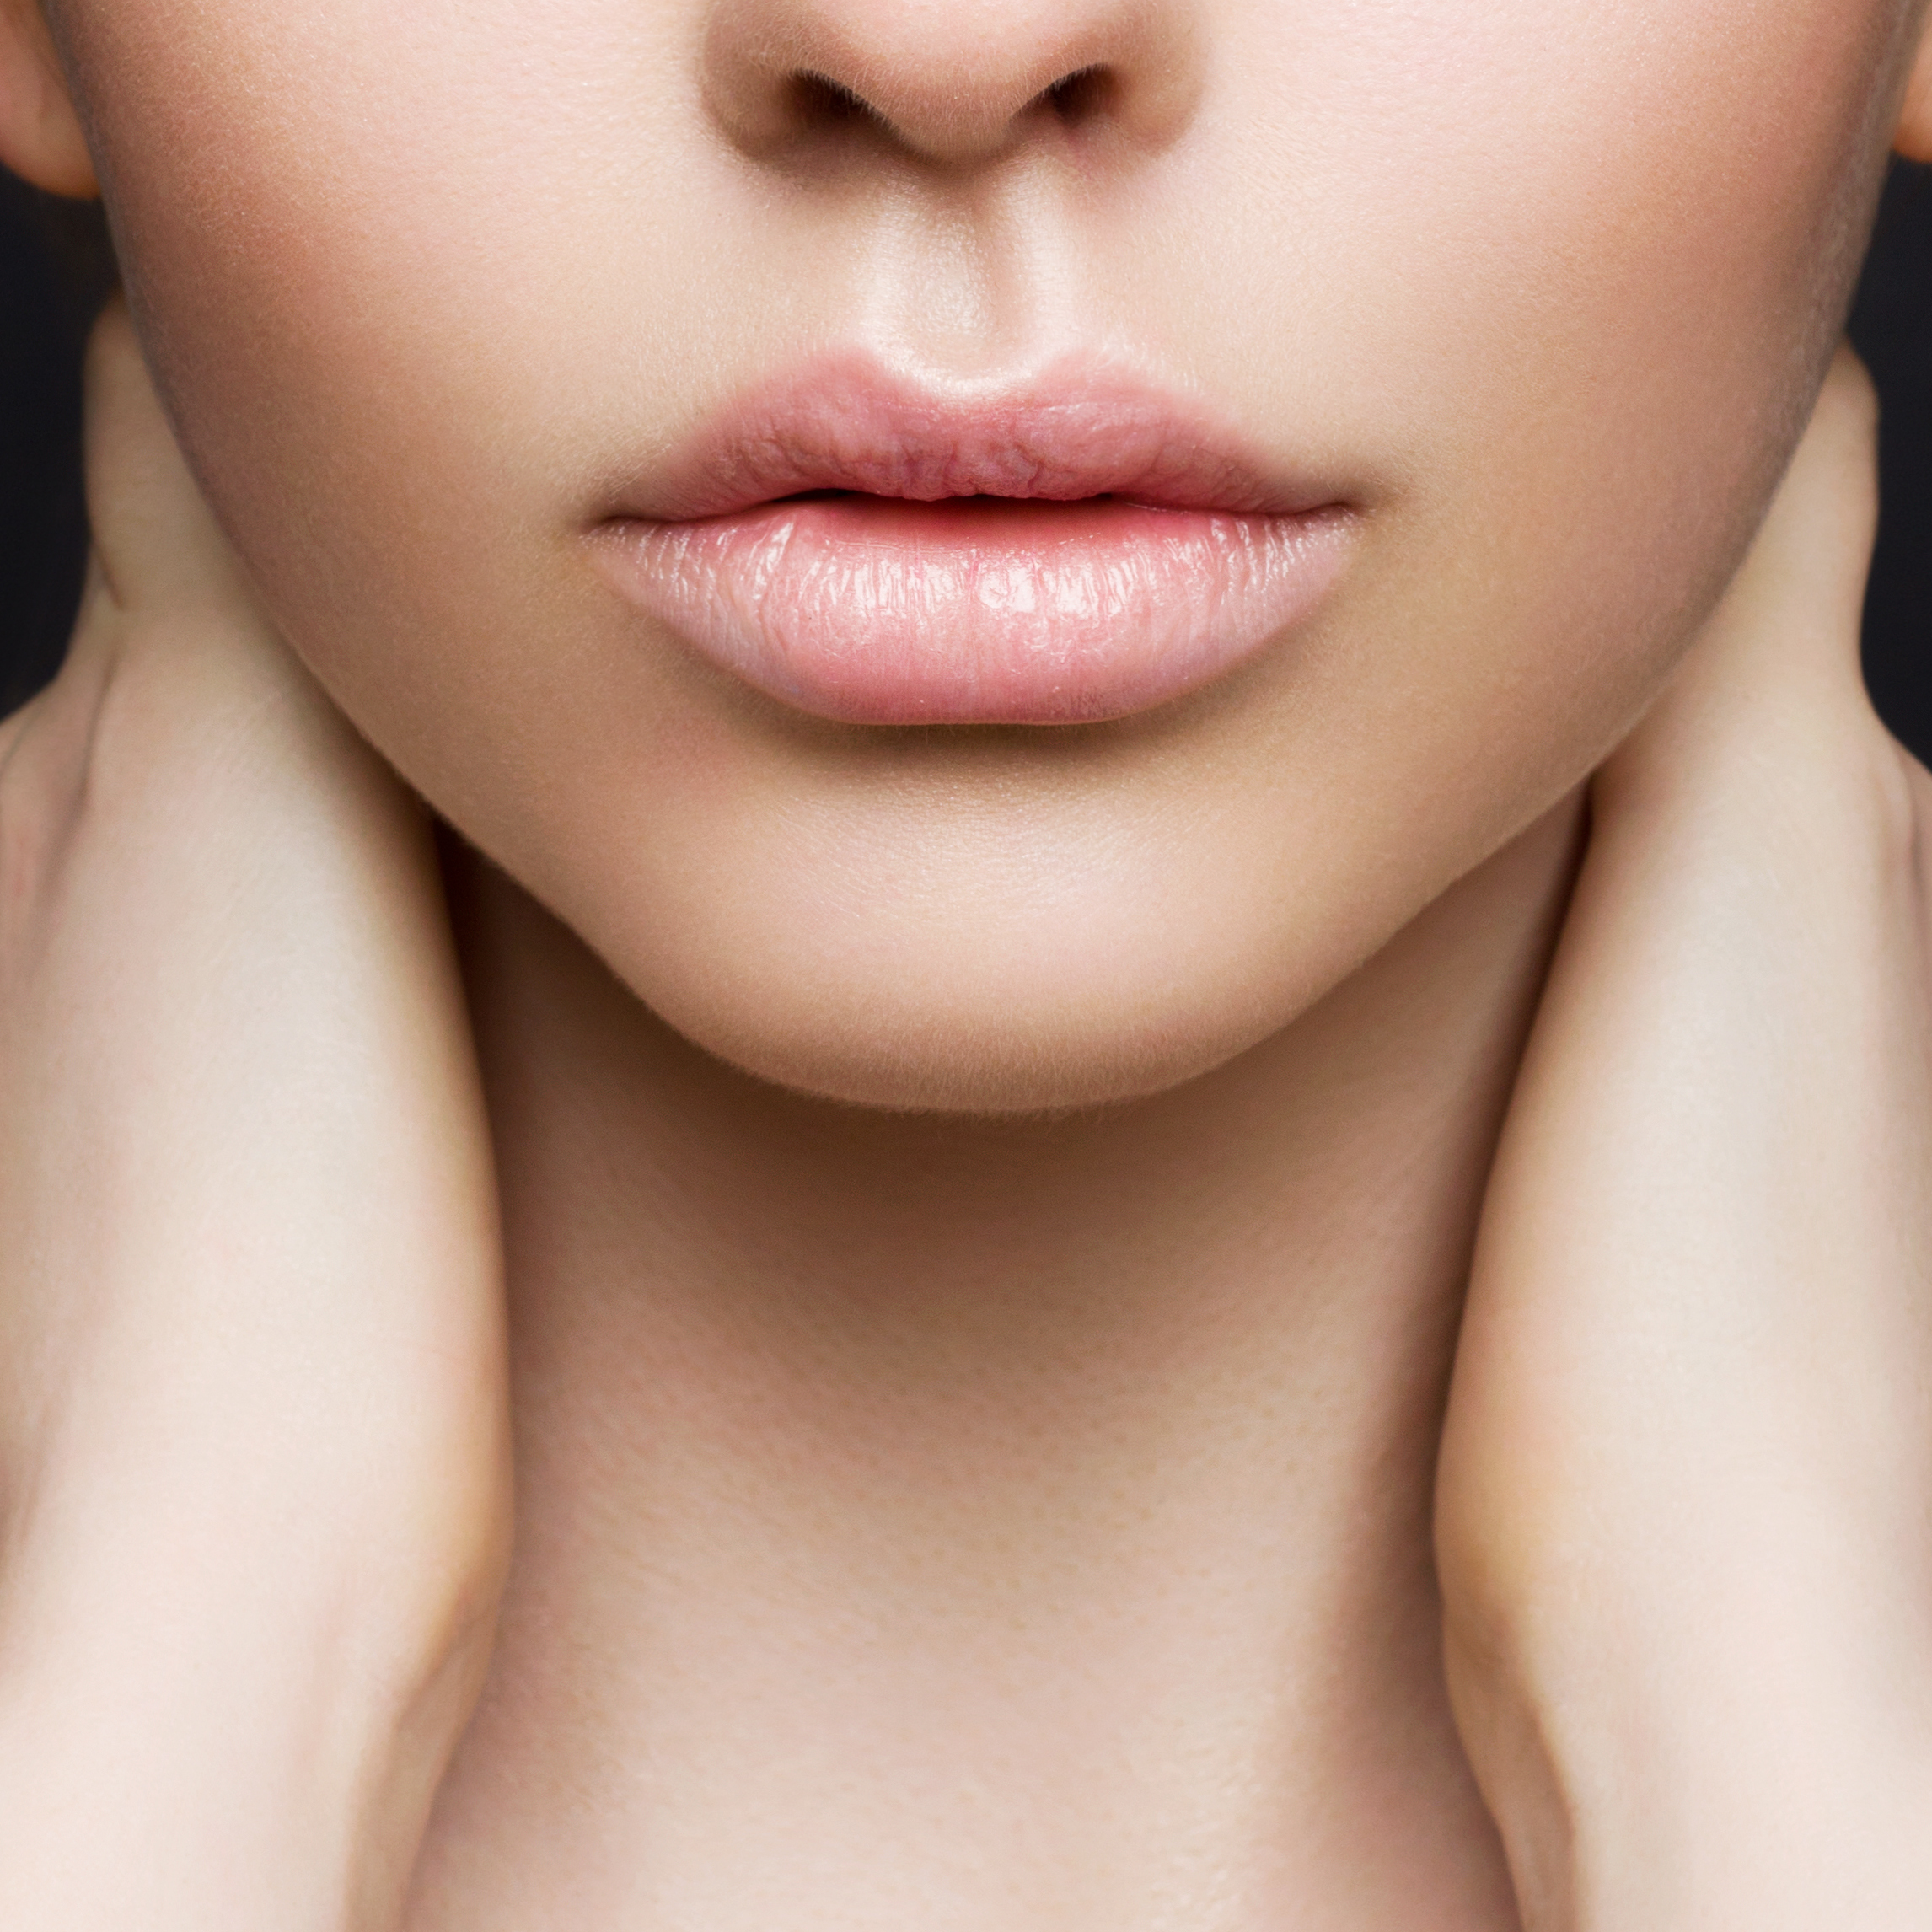 Summertime Lip and Face Cosmetic Surgery Trends